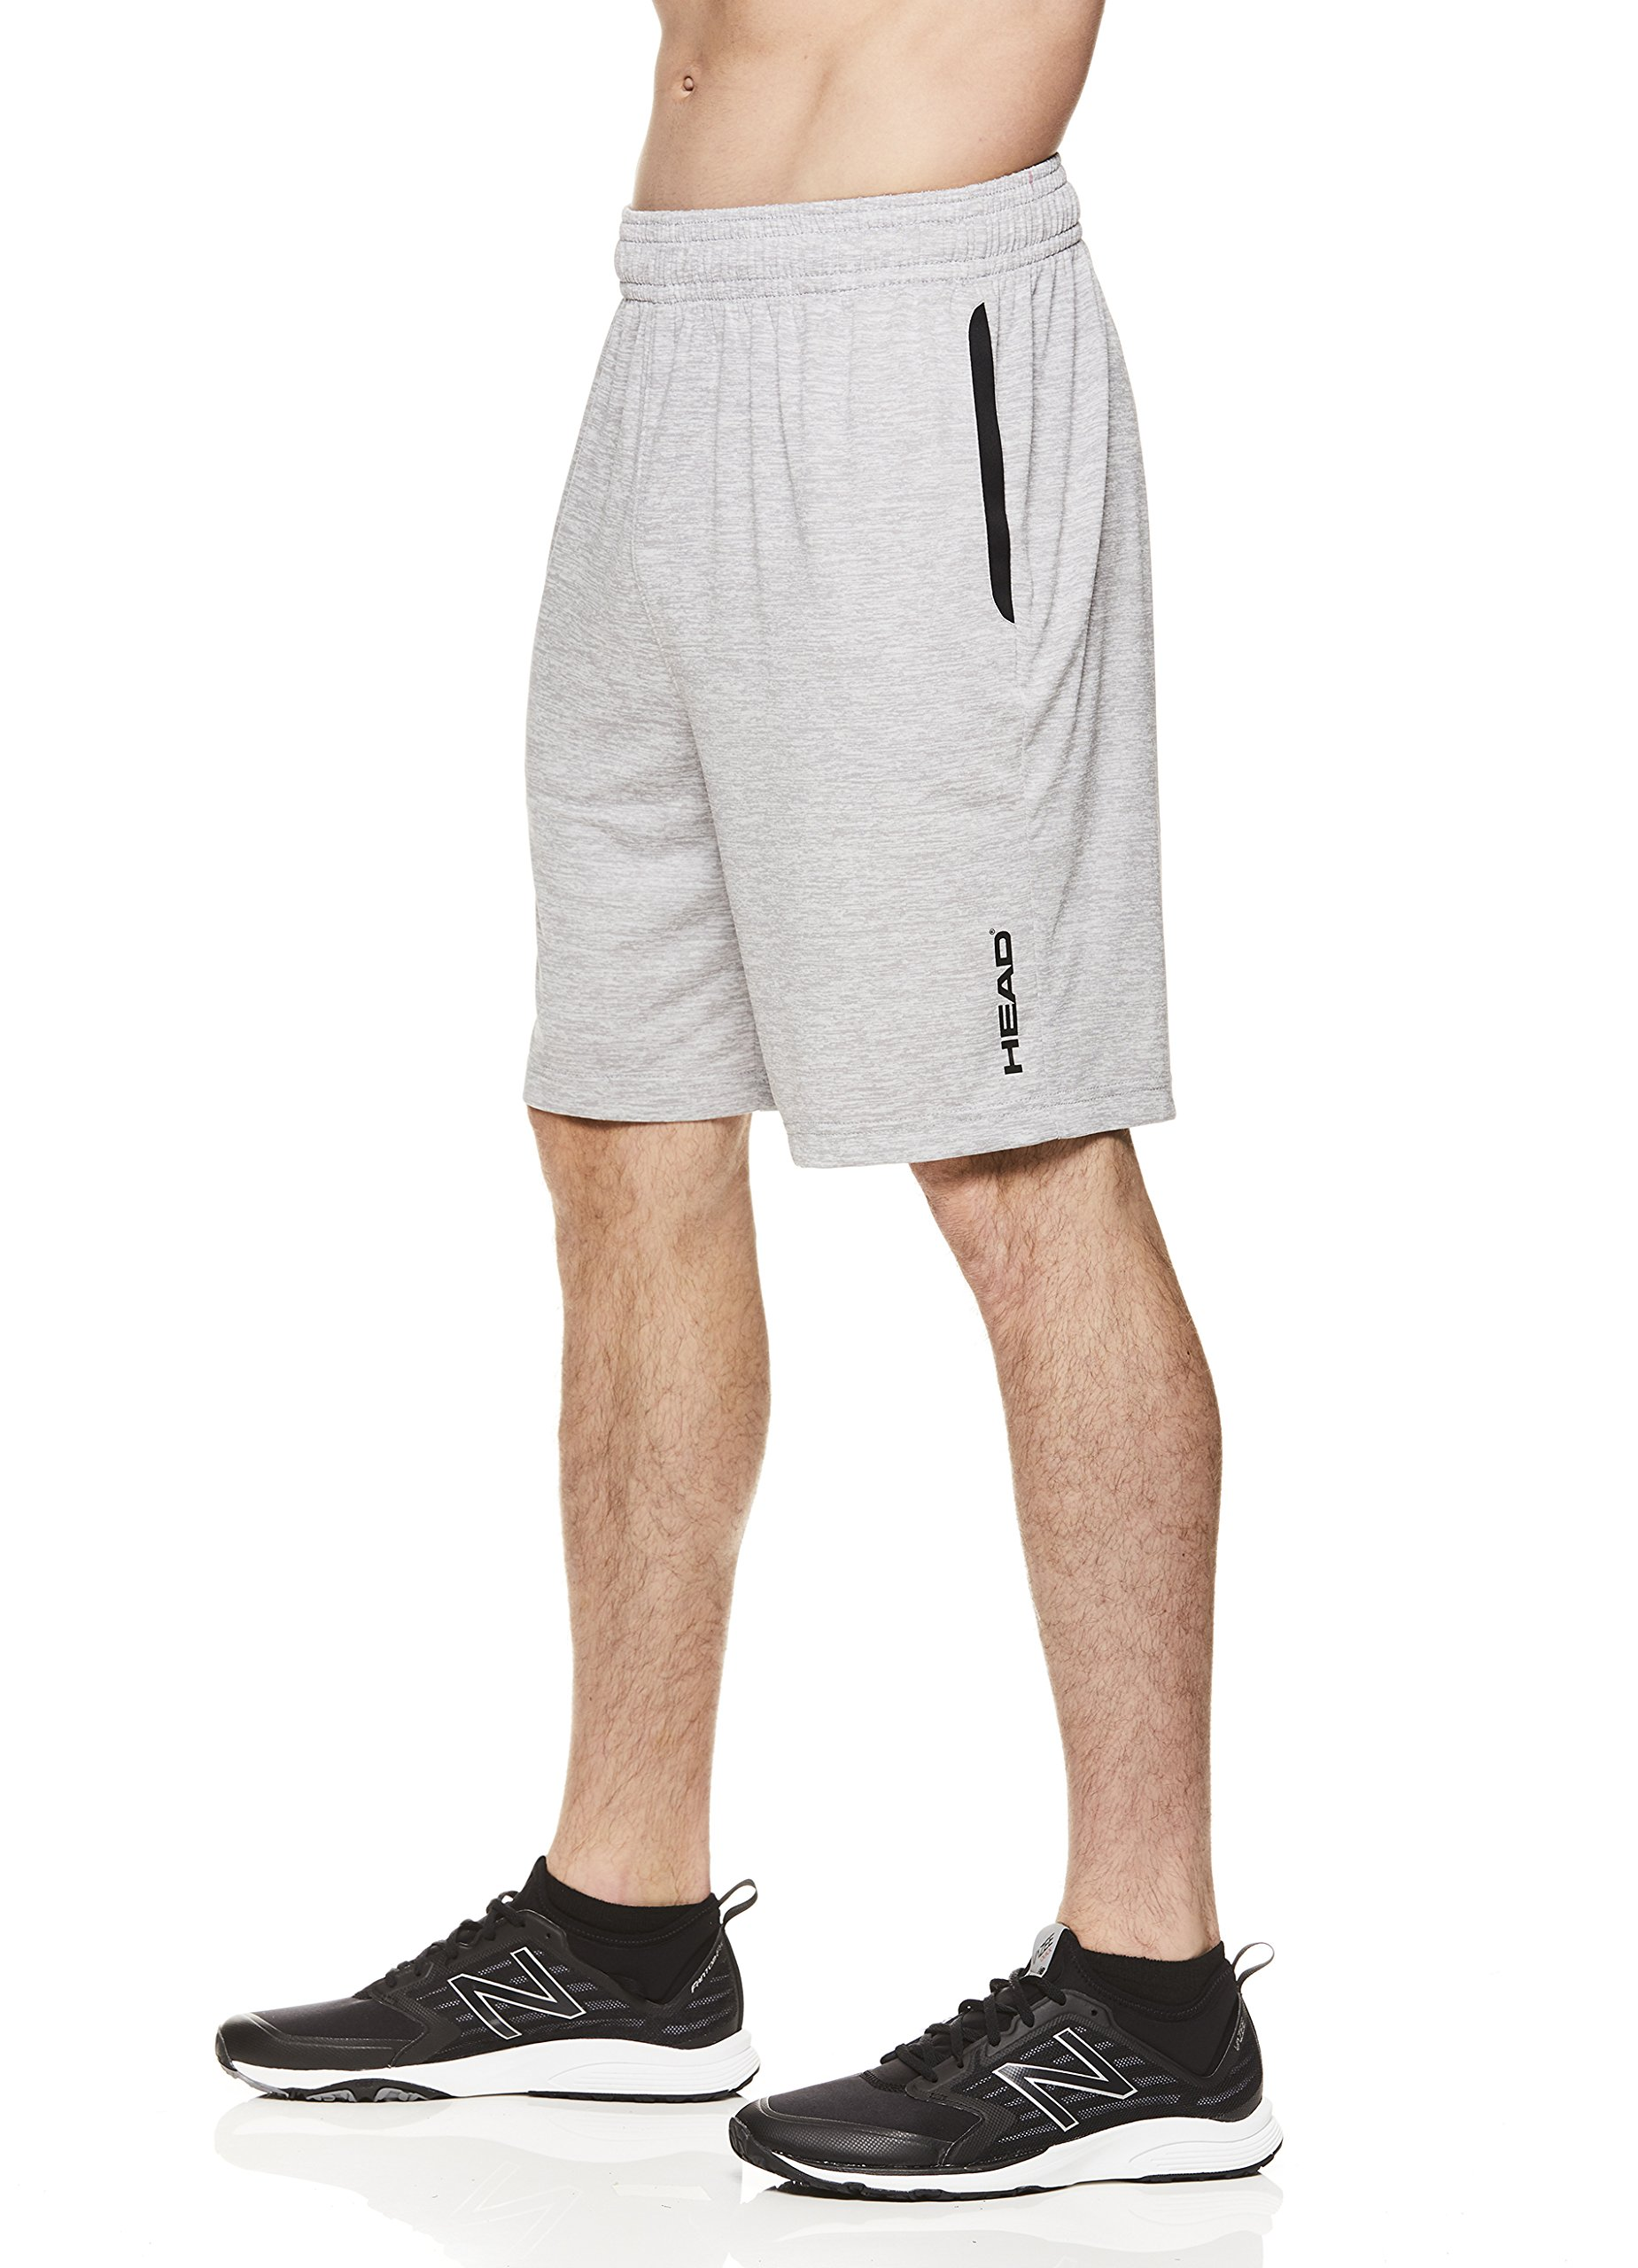 HEAD Men's Polyester Workout Gym & Running Shorts w/Elastic Waistband & Drawstring - Advantage Sleet Heather Grey, 2X